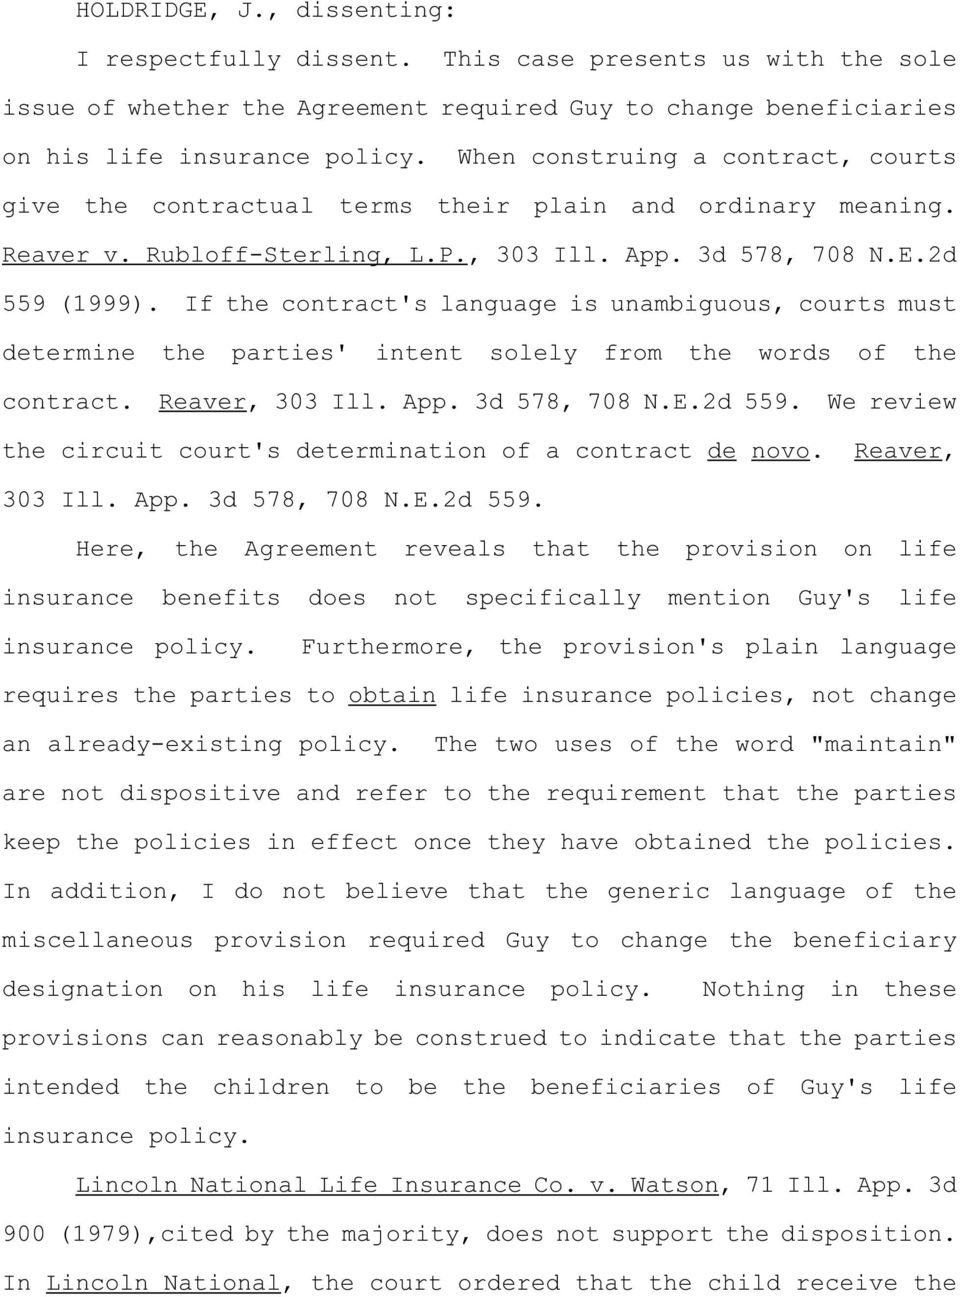 If the contract's language is unambiguous, courts must determine the parties' intent solely from the words of the contract. Reaver, 303 Ill. App. 3d 578, 708 N.E.2d 559.